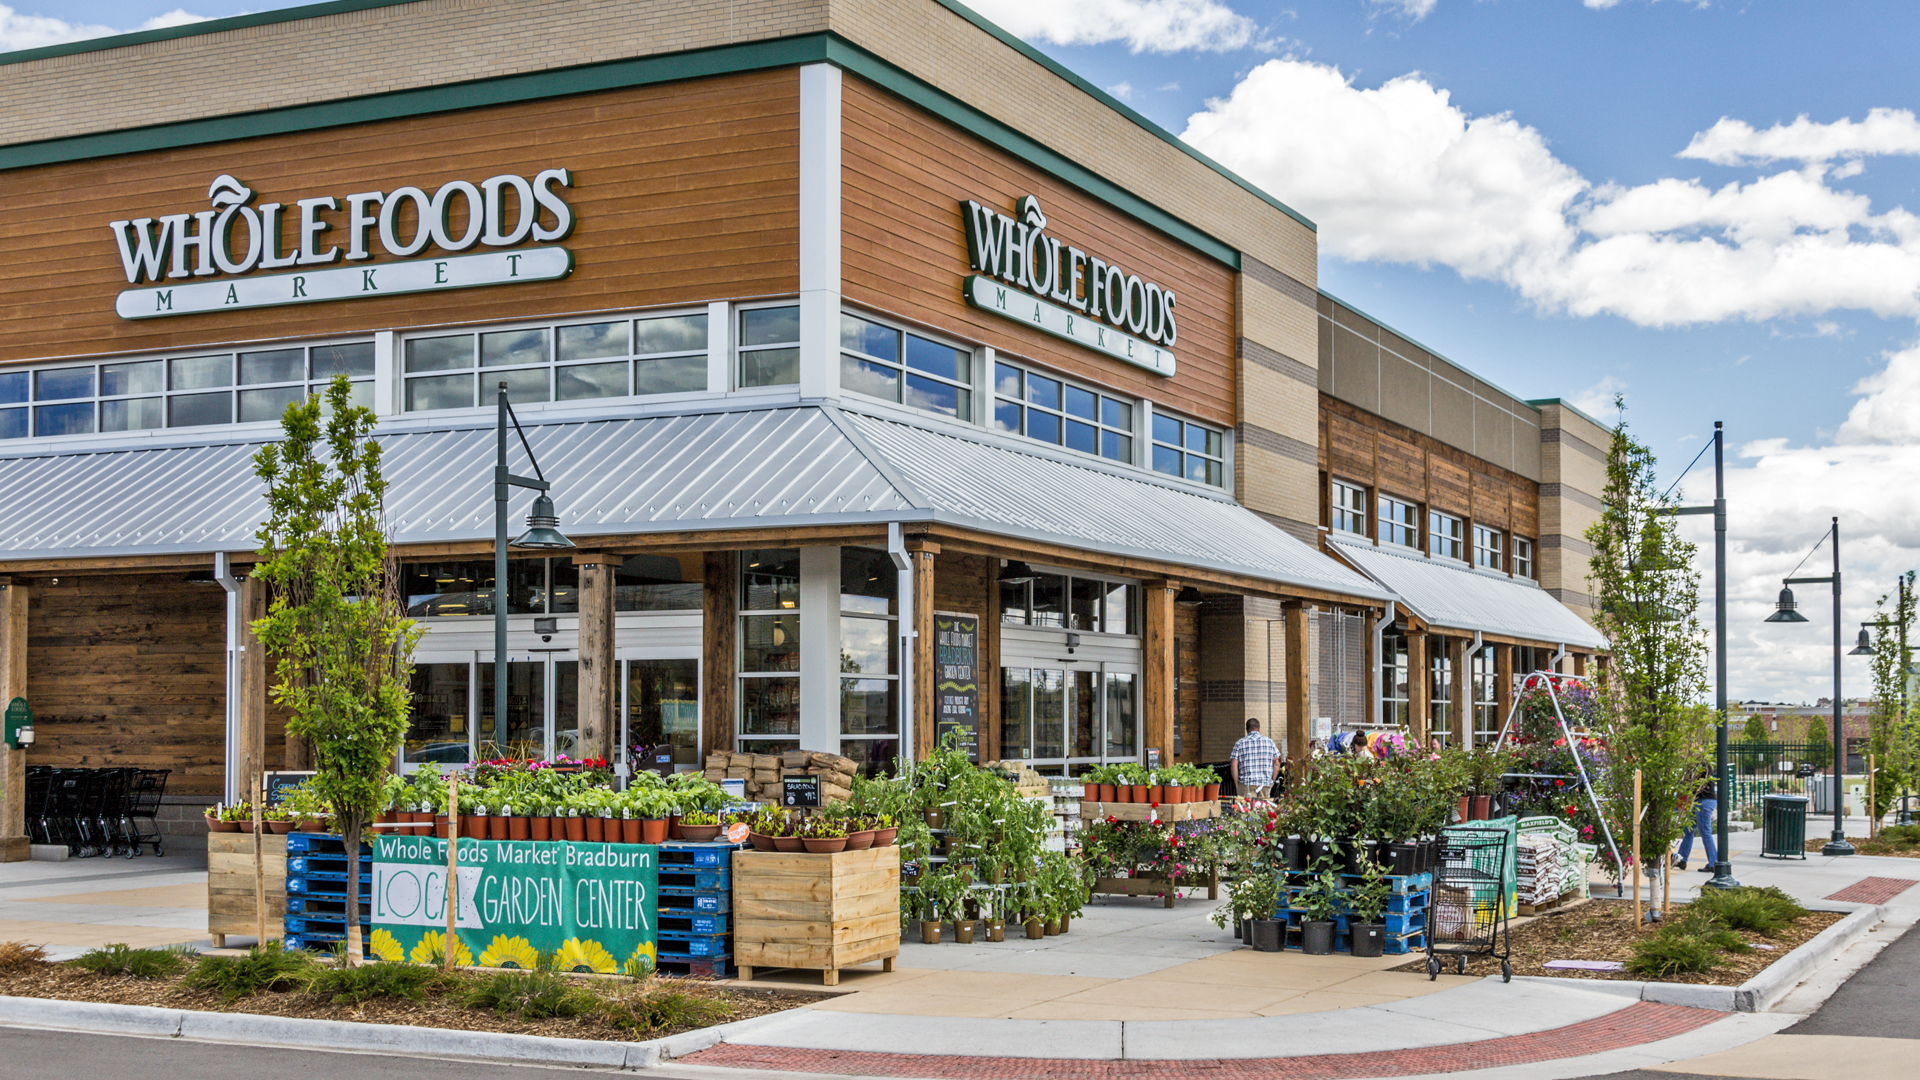 <p>All residences are within a short walk of the village's commercial core, with 100,000 square feet of shops, restaurants, offices and a newly opened Whole Foods Market.</p>